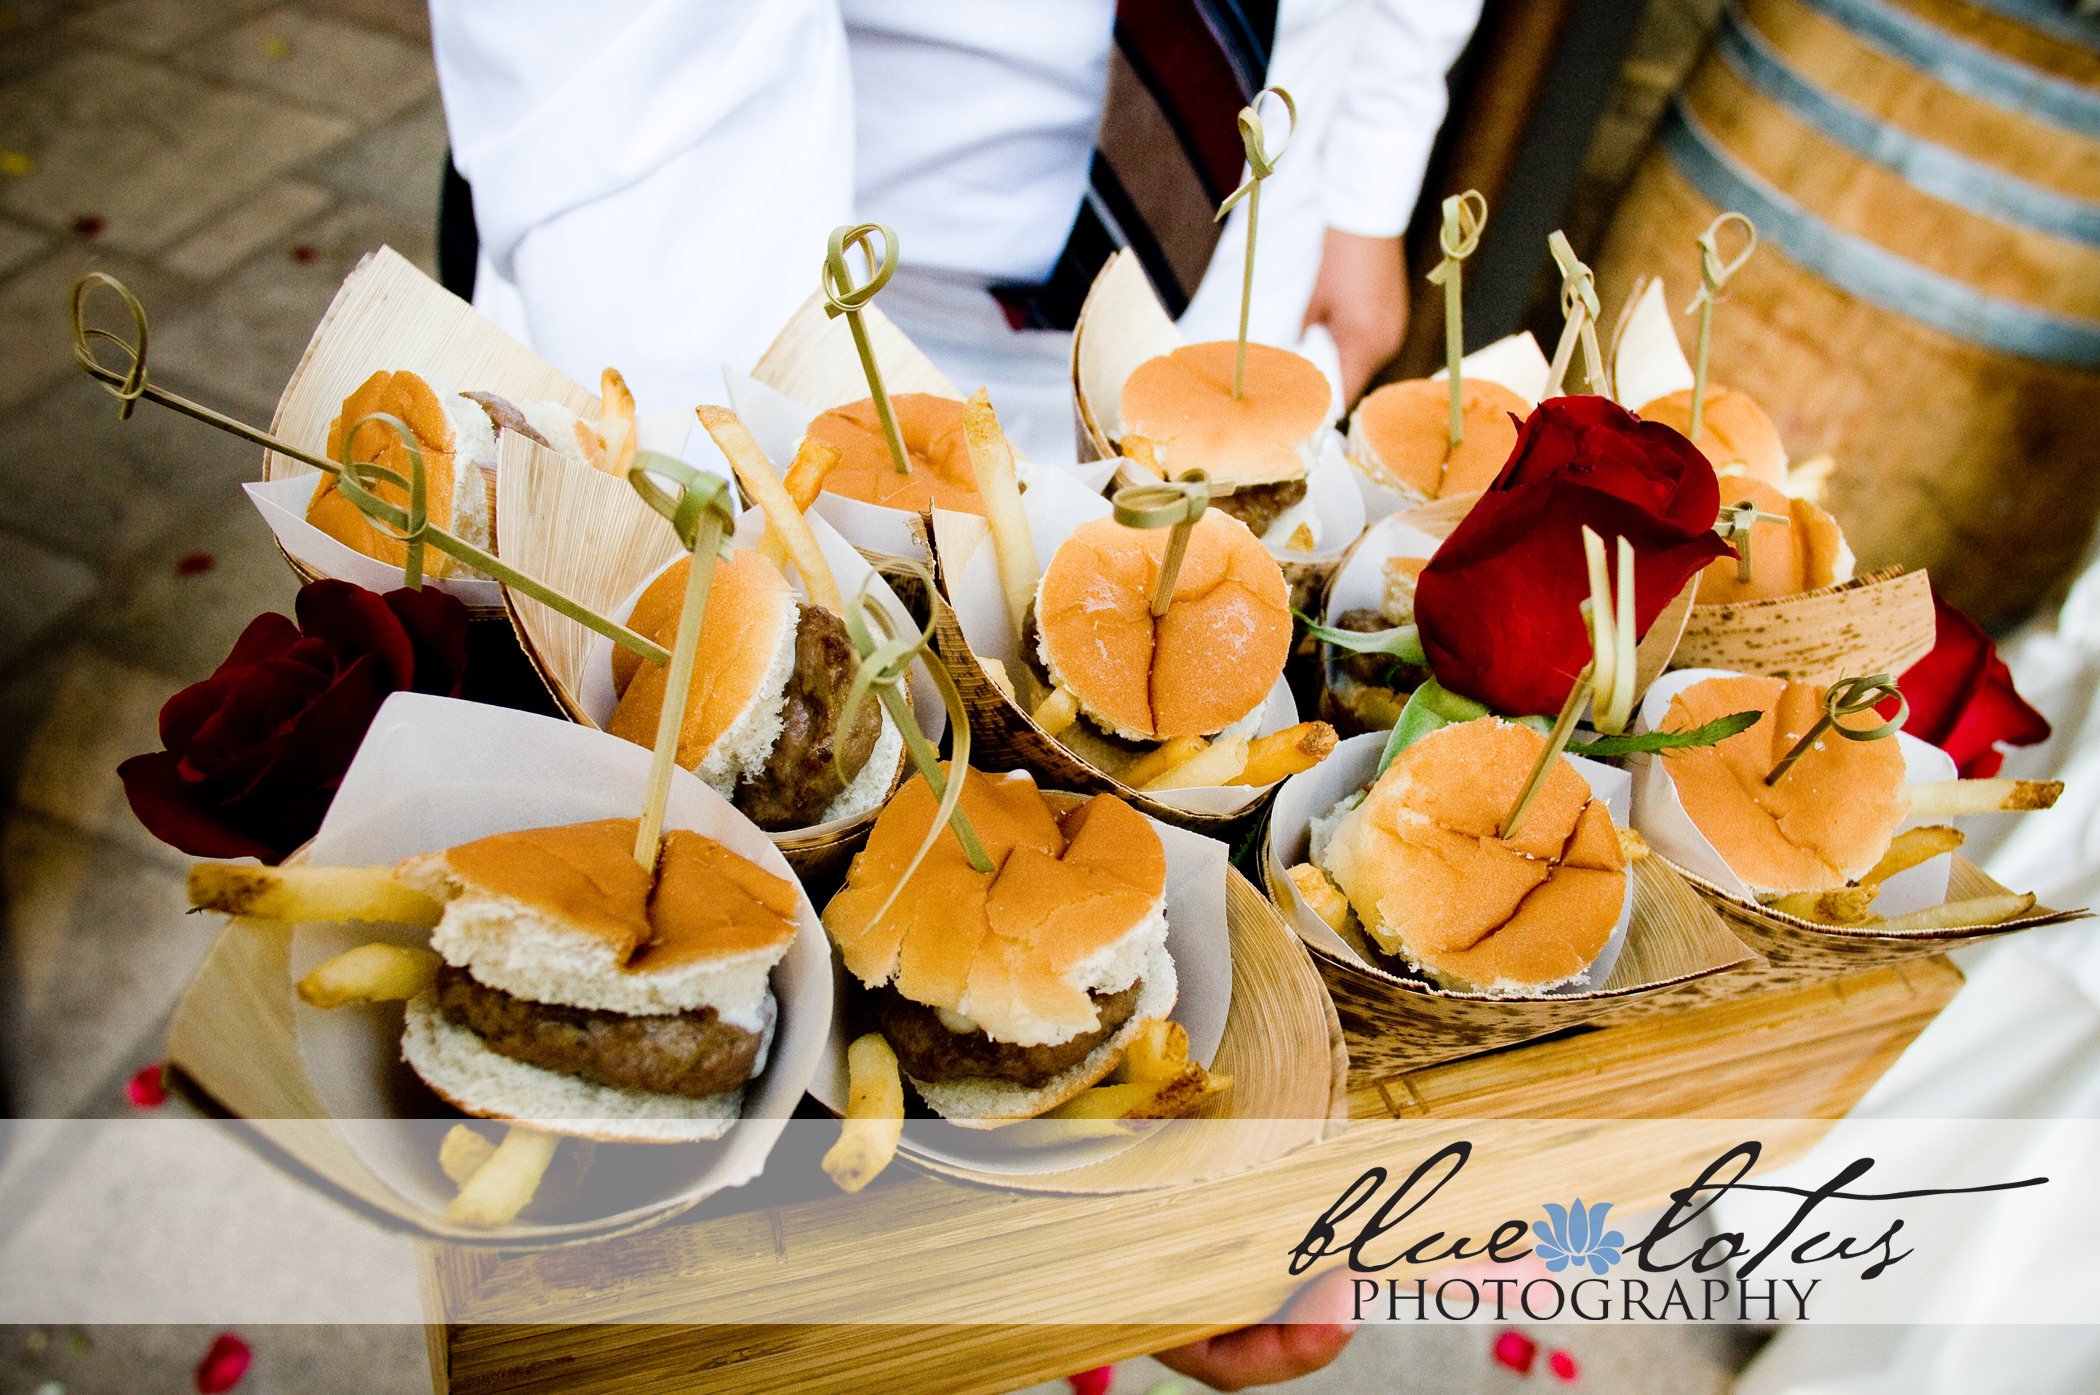 Reception, Flowers & Decor, Food, Mini, Cheese, Inspiration board, Burgers, Fries